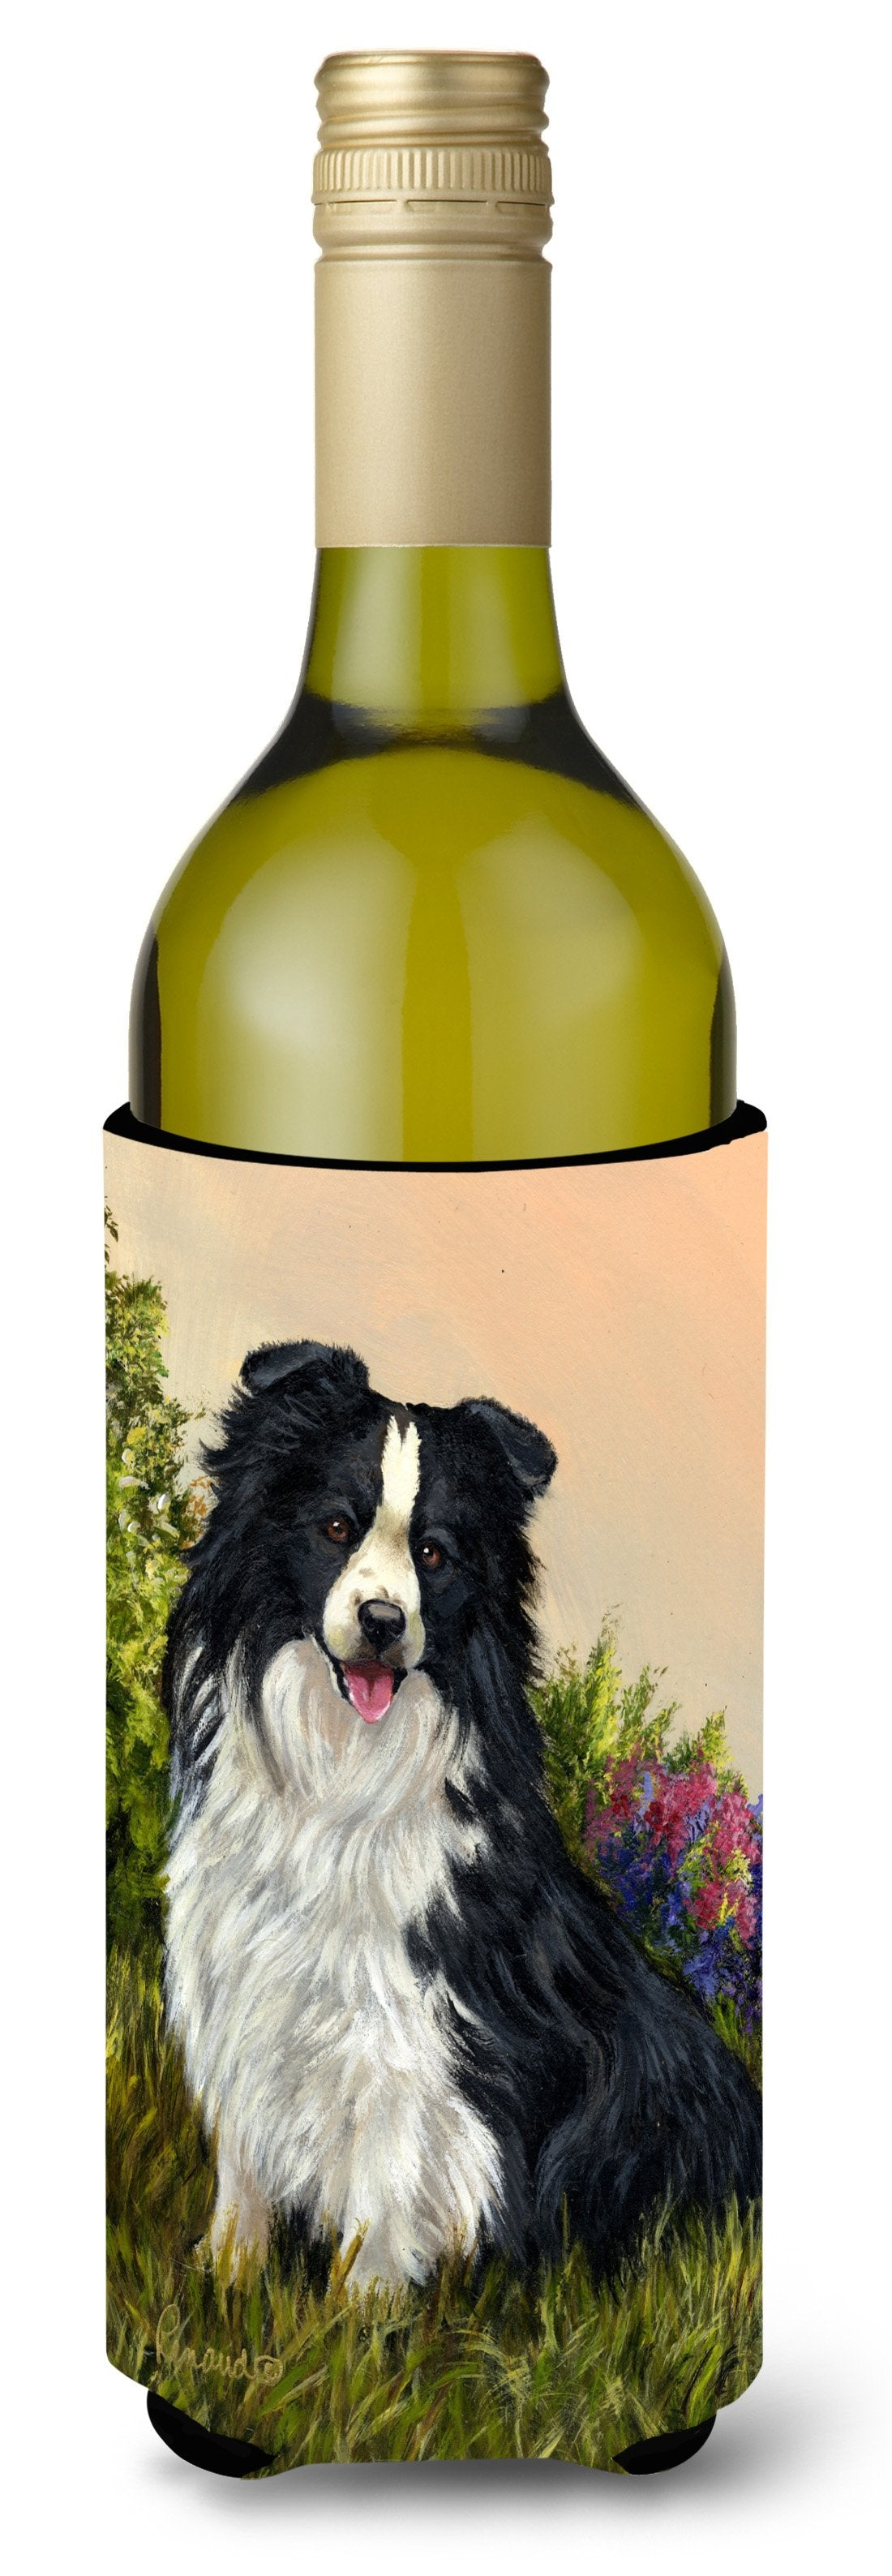 Border Collie Simplicity Wine Bottle Hugger PPP3031LITERK by Caroline's Treasures